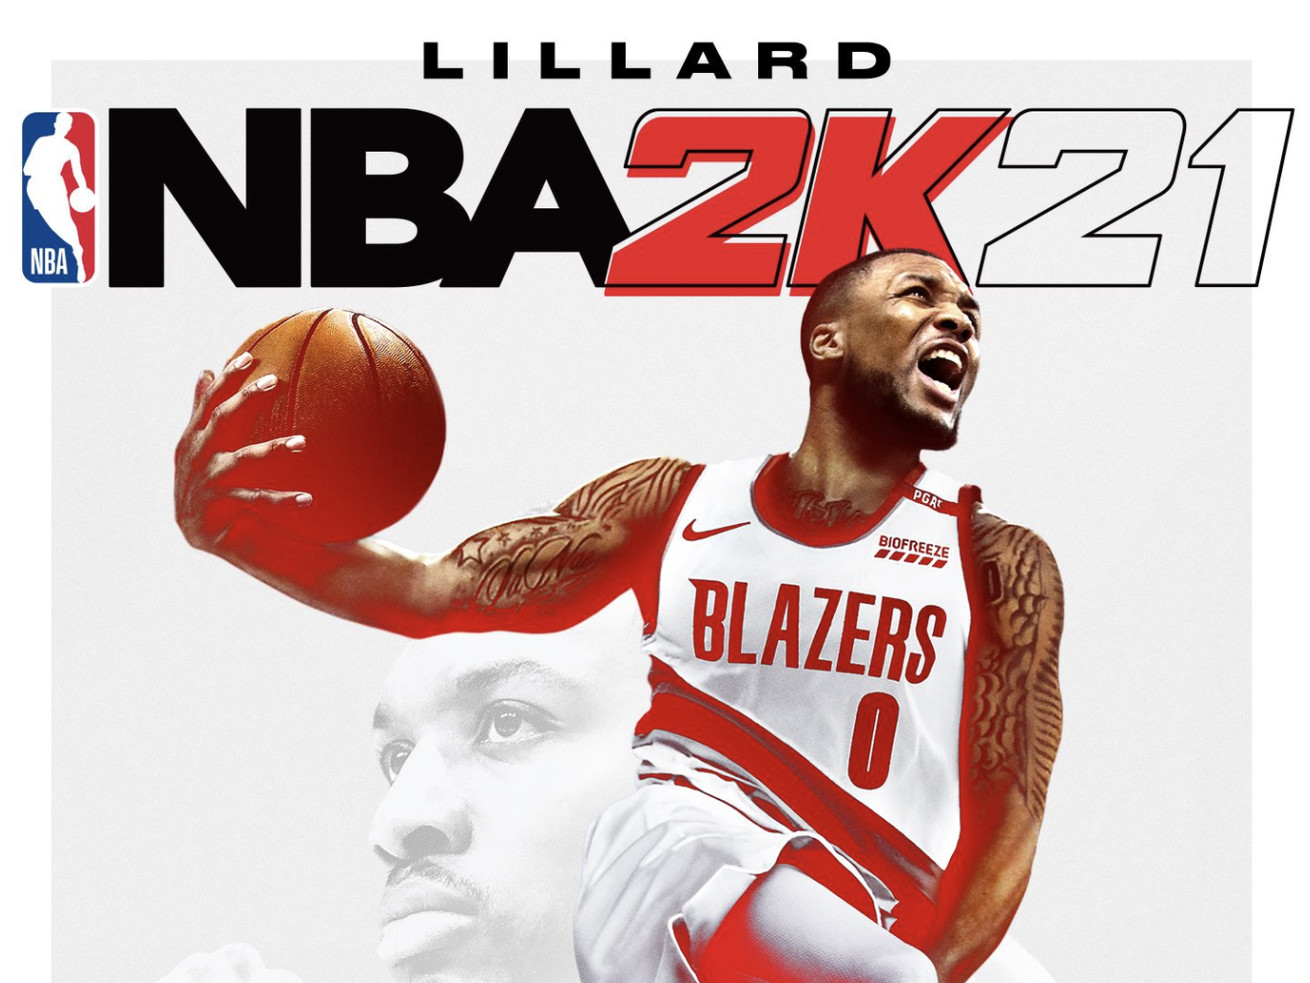 Portland Trailer Blazers star Damian Lillard has been chosen as the cover athlete for NBA 2K21. .